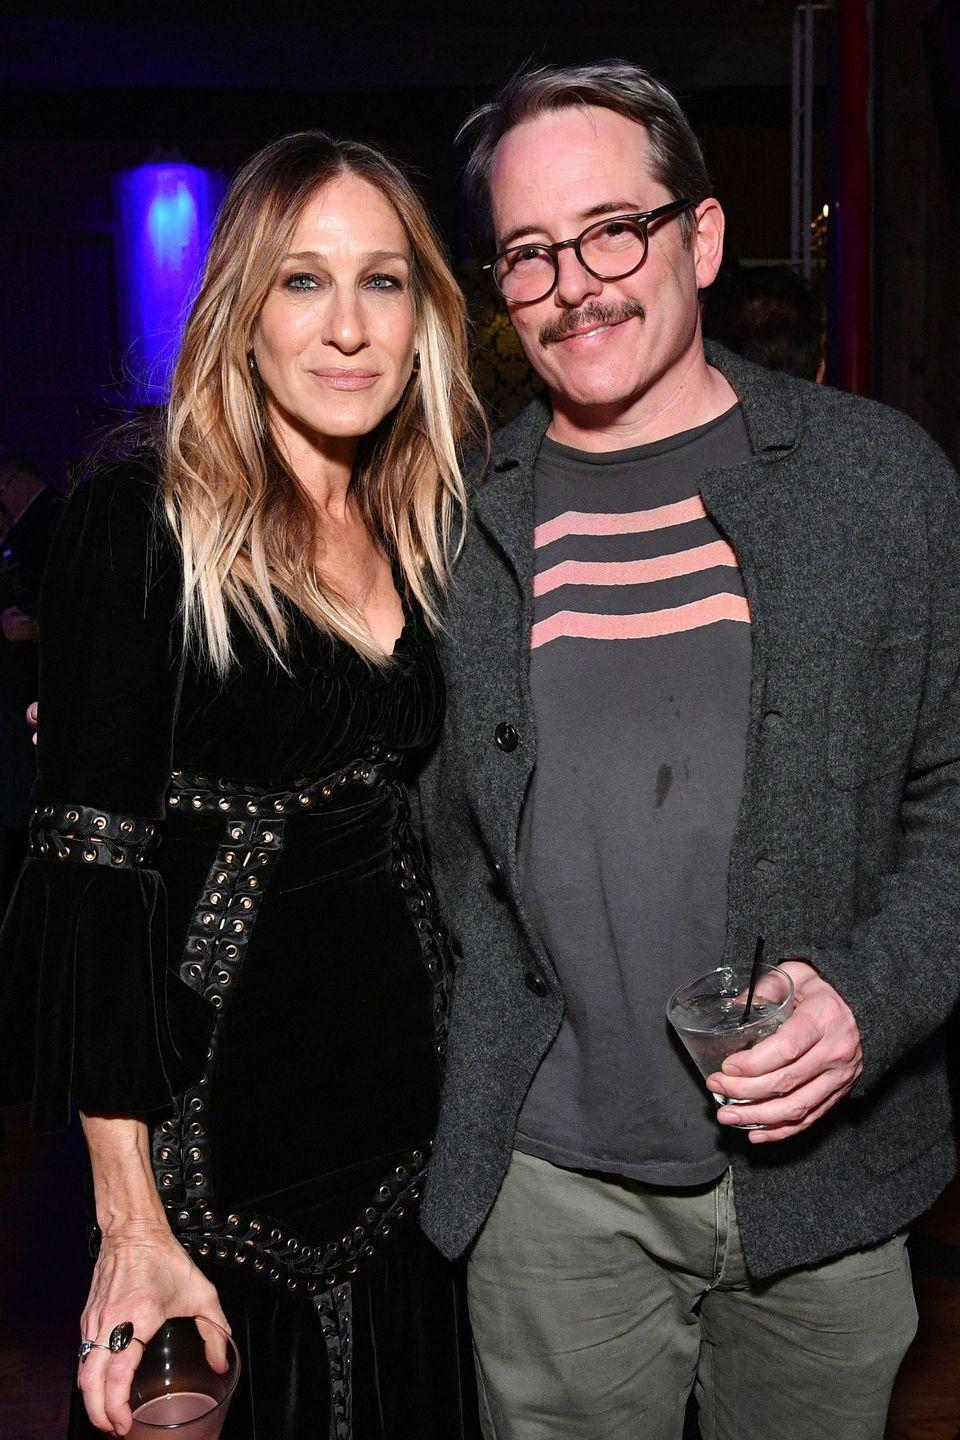 "<p>With a mutual love of the theatre, baseball, and New York City, it's no wonder Sarah Jessica Parker and Matthew Broderick fell in love and <a href=""https://www.goodhousekeeping.com/life/relationships/a47905/sarah-jessica-parker-matthew-broderick-marriage/"" rel=""nofollow noopener"" target=""_blank"" data-ylk=""slk:tied the knot"" class=""link rapid-noclick-resp"">tied the knot</a> in 1997. In true Carrie Bradshaw form, SJP went bold in a <a href=""https://www.harpersbazaar.com/celebrity/latest/news/a18222/sarah-jessica-parker-regrets-black-wedding-dress/"" rel=""nofollow noopener"" target=""_blank"" data-ylk=""slk:black Morgane Le Fay dress"" class=""link rapid-noclick-resp"">black Morgane Le Fay dress</a>.</p><p>Decades later and their love is still going strong. In the 2013 September Issue of <em><a href=""https://www.harpersbazaar.com/celebrity/latest/news/a1003/sarah-jessica-parker-interview-0913/"" rel=""nofollow noopener"" target=""_blank"" data-ylk=""slk:BAZAAR"" class=""link rapid-noclick-resp"">BAZAAR</a></em>, SJP stated: ""I love Matthew Broderick. Call me crazy, but I love him. We can only be in the marriage we are. We're very devoted to our family and our lives. I love our life. I love that he's the father of my children, and it's because of him that there's this whole other world that I love.""</p>"